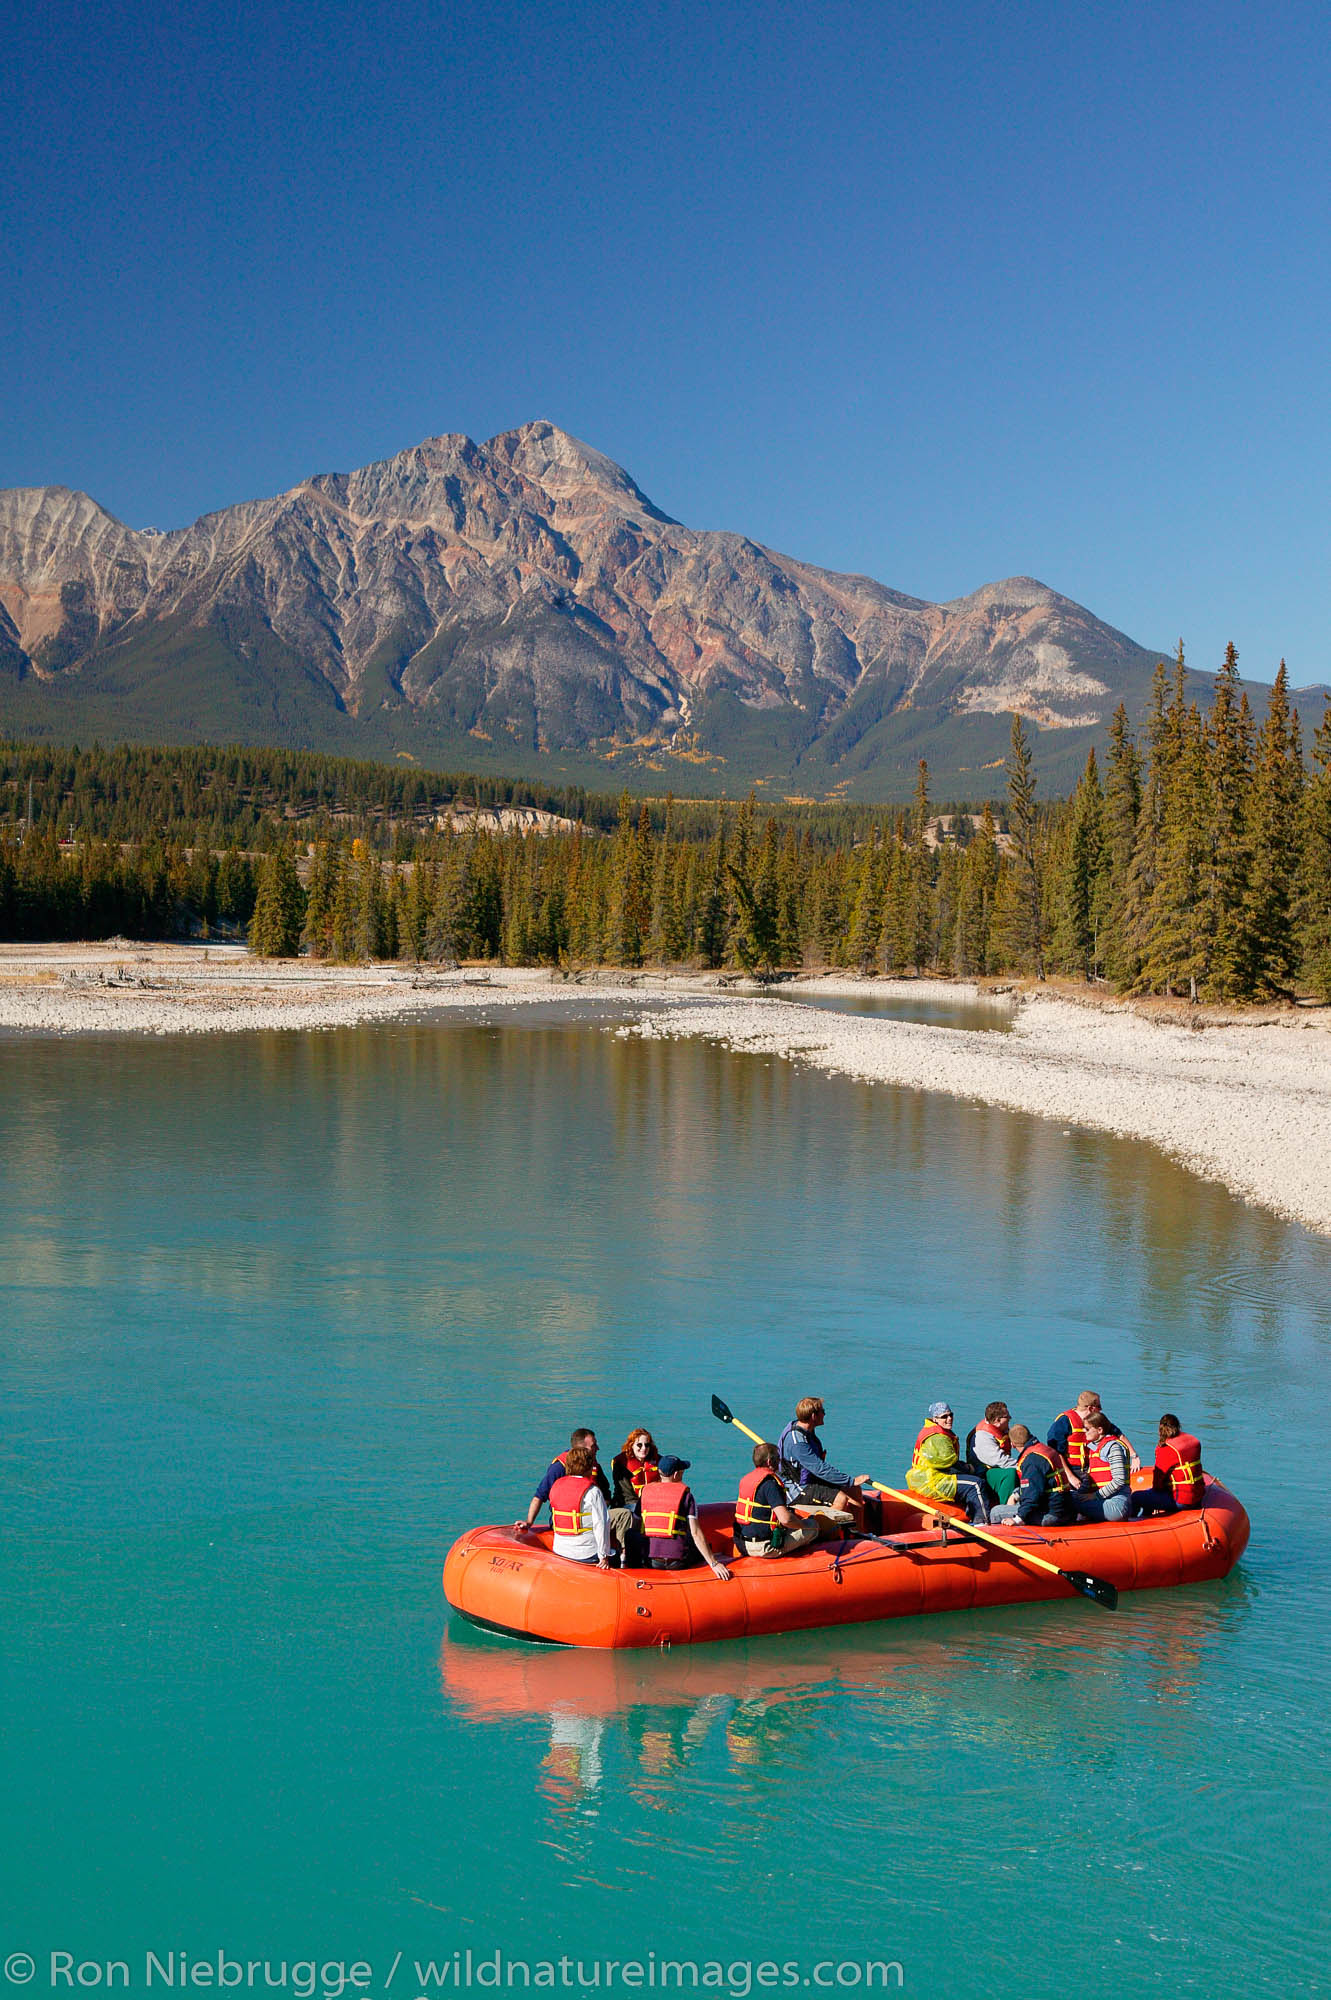 Rafting on the Athabasca River, Jasper National Park, Alberta, Canada.